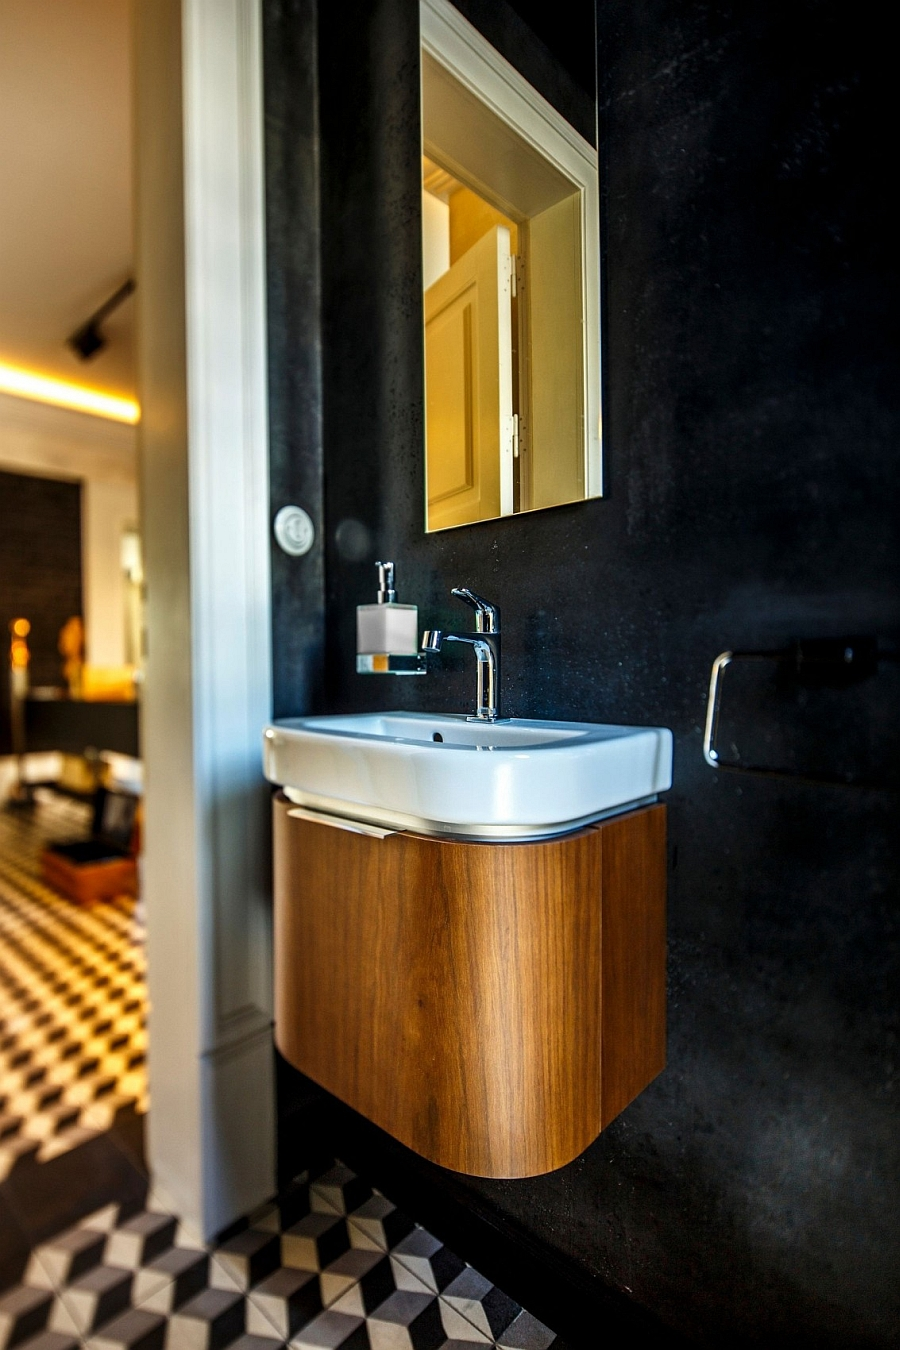 Wall mounted sink with wooden exterior